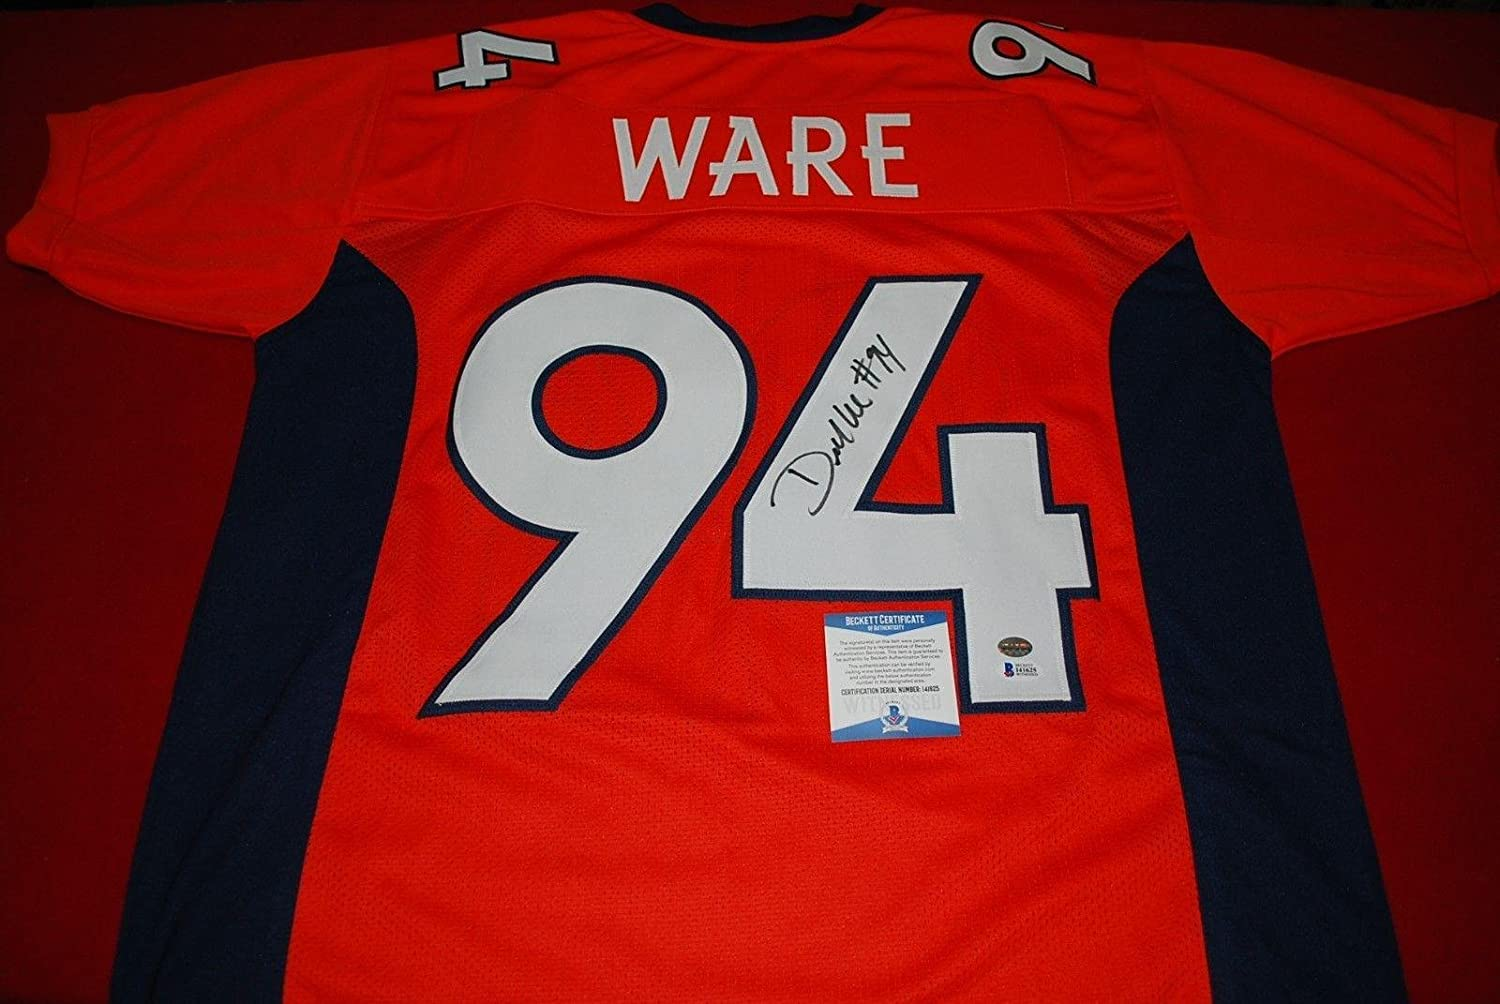 half off a2f9c a1558 hot sale 2017 Signed DeMarcus Ware Jersey - custom becket ...